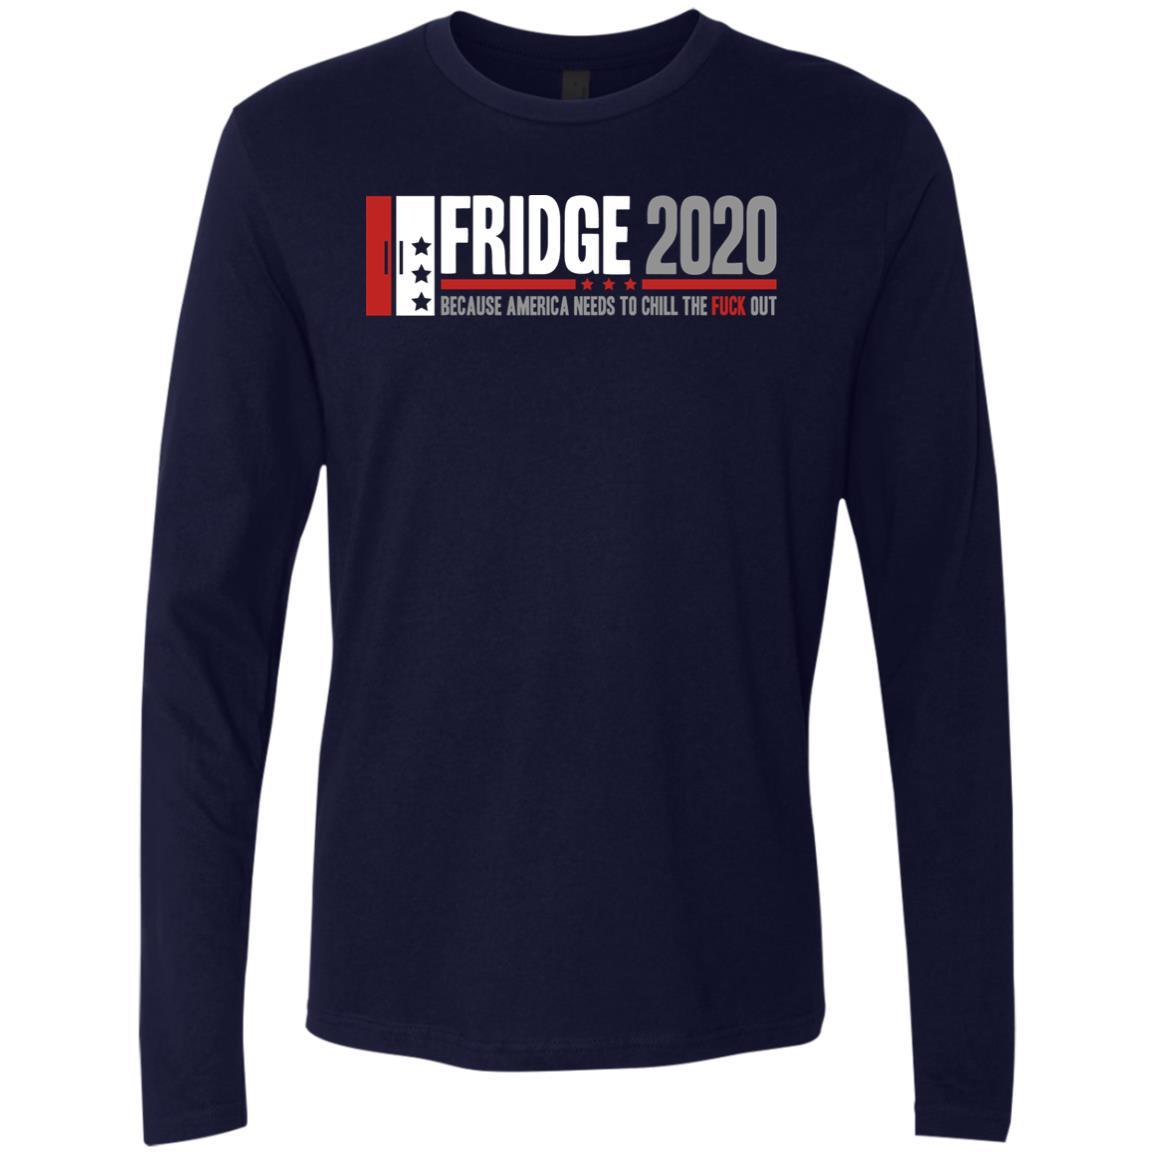 T-Shirts - Fridge 2020 Premium Long Sleeve